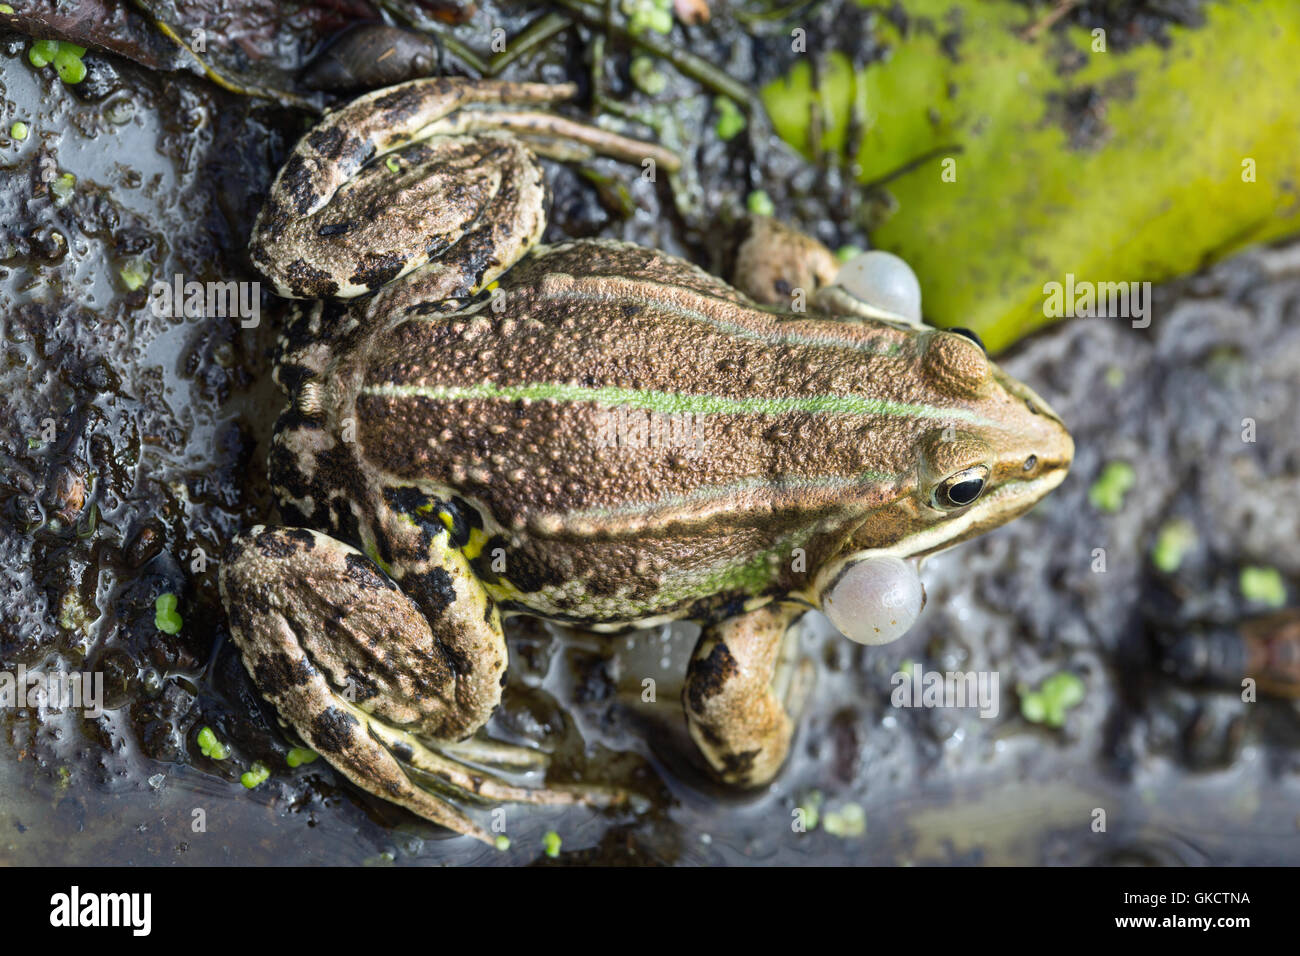 Pool Frog (Pelophylax lessonae). Male calling. Inflated lateral vocal sacs. - Stock Image